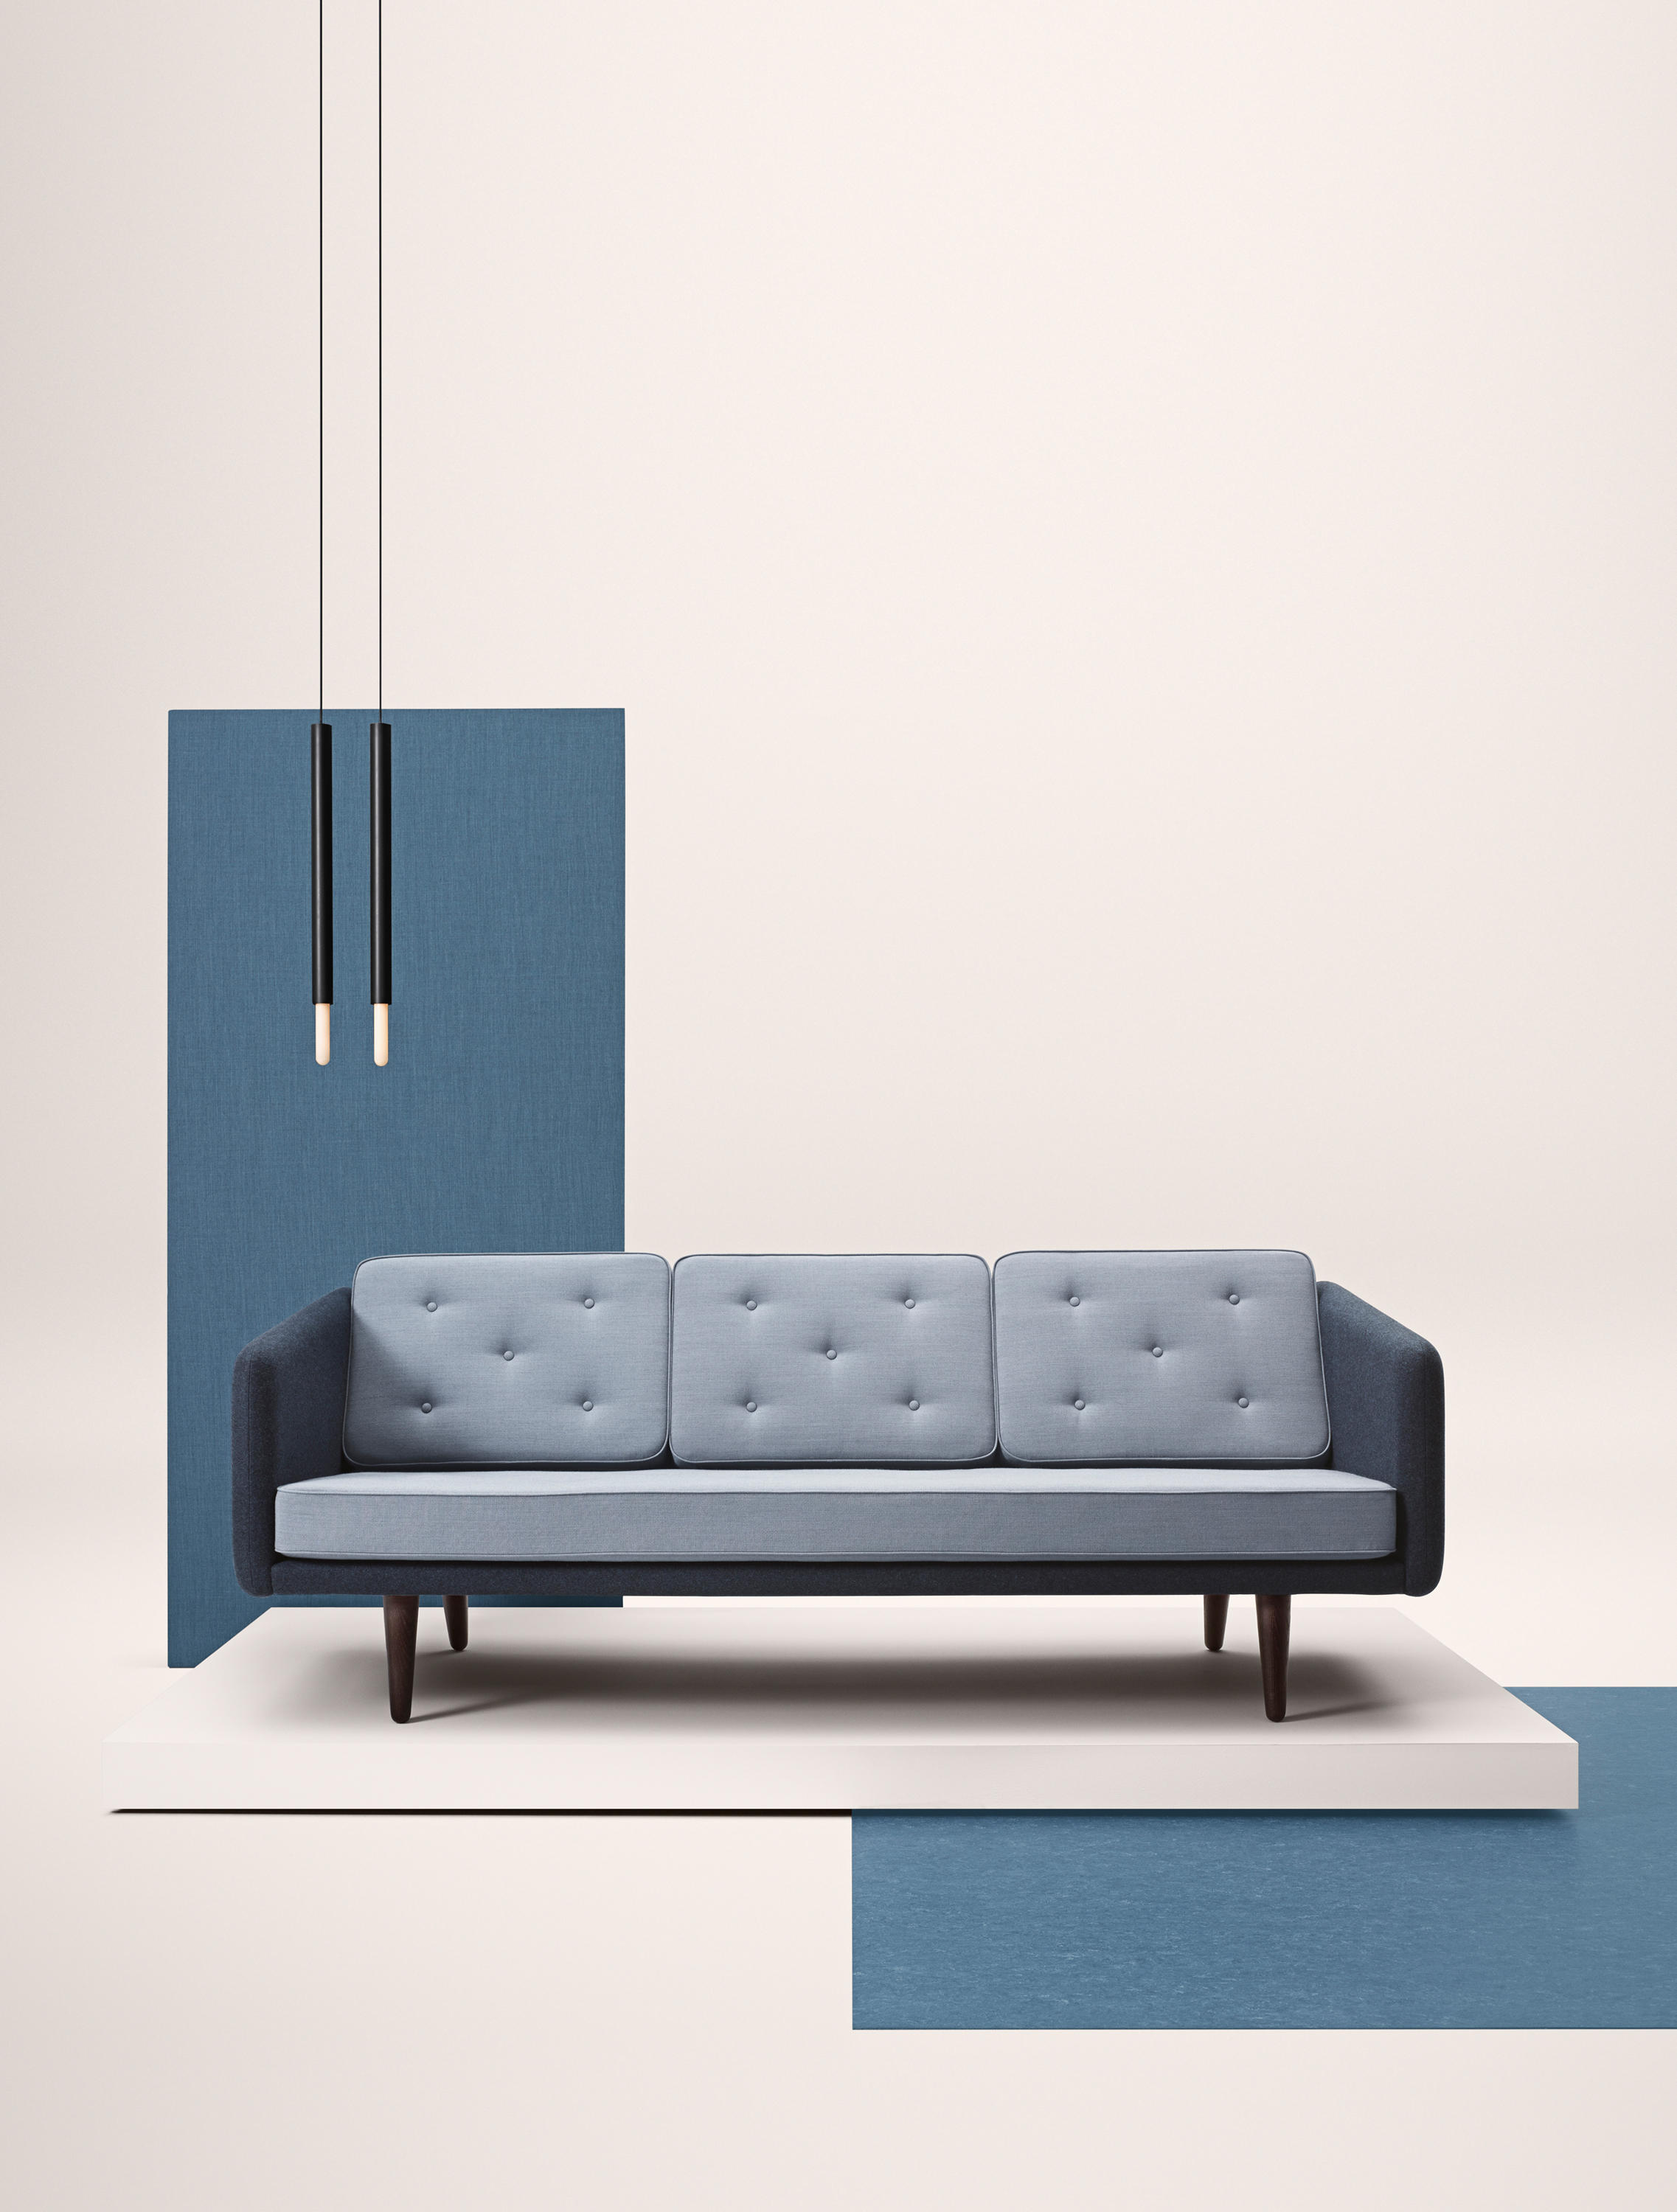 from cupboard furniture architonic product sofas fredericia lounge sofa bm by seat pers amb no h oiledoak en